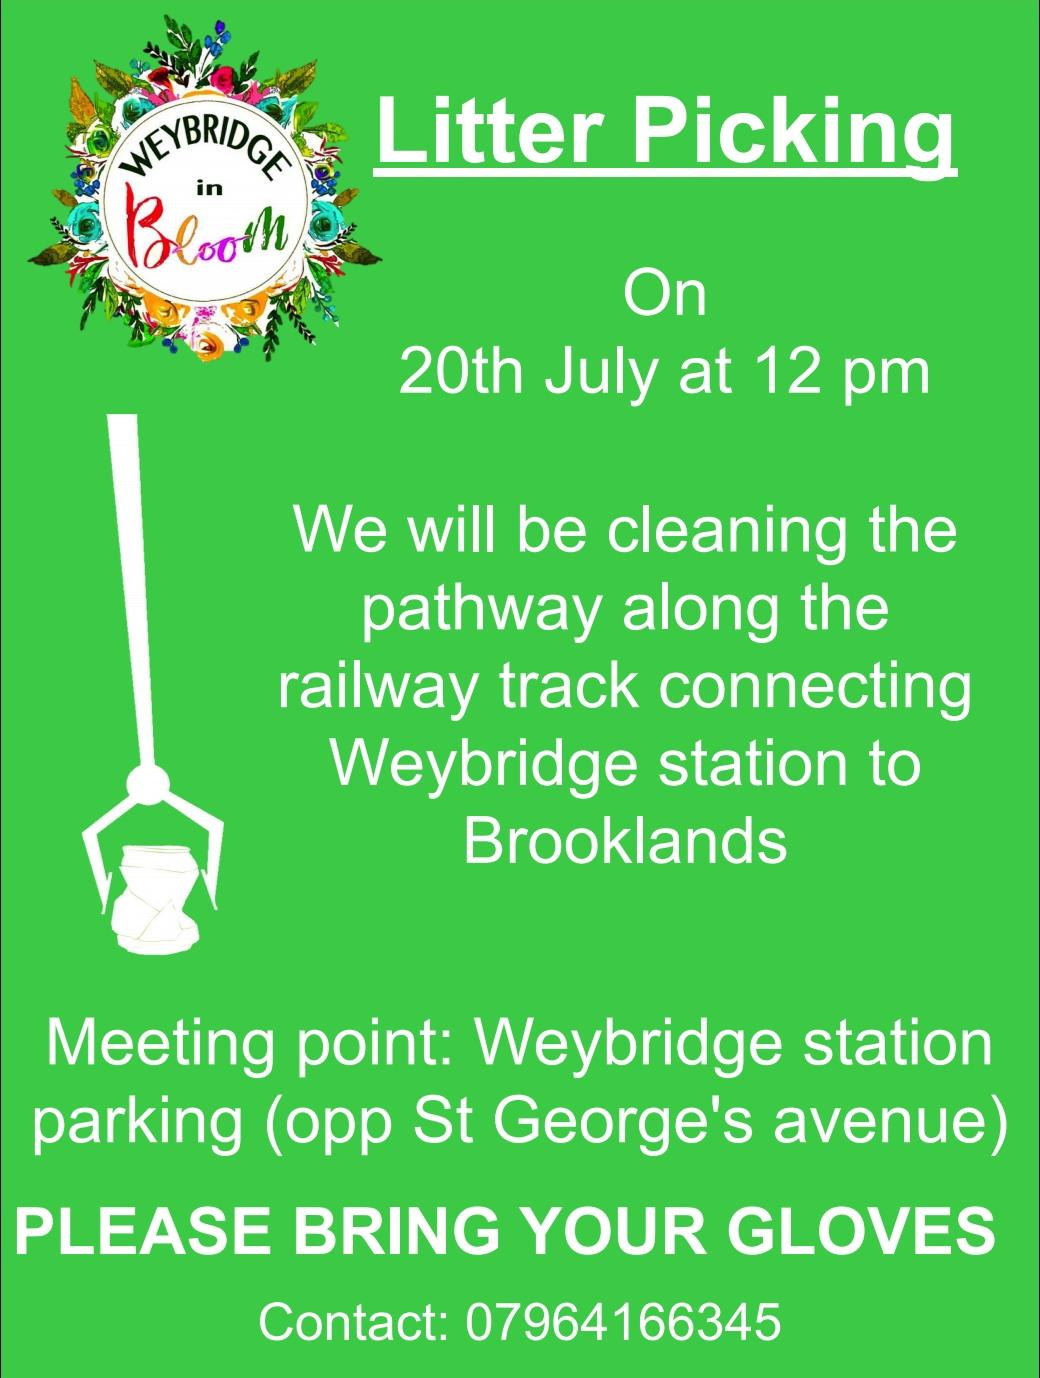 Weybridge in Bloom is a community project aimed at increasing civic pride in the local Weybridge community